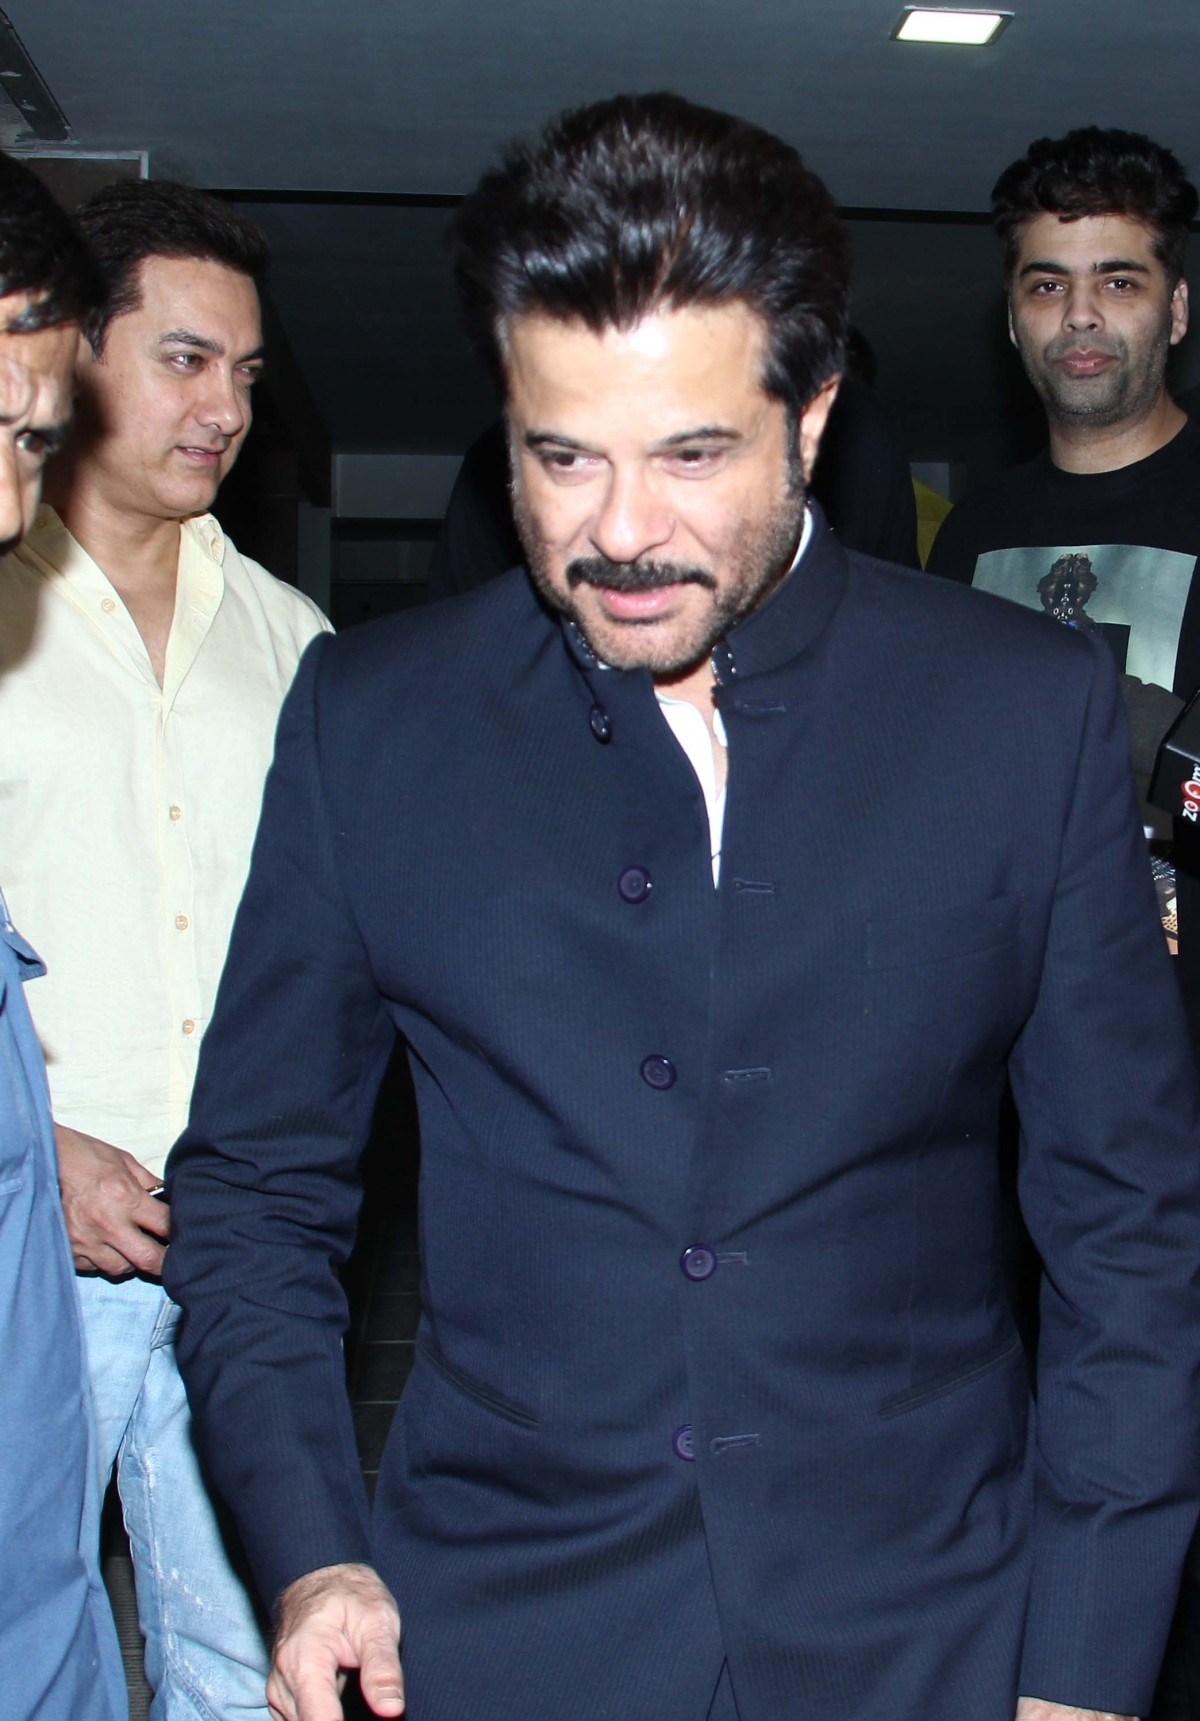 Ranbir Kapoor, Anil Kapoor Spotted at 'PK' star Aamir Khan's Residence